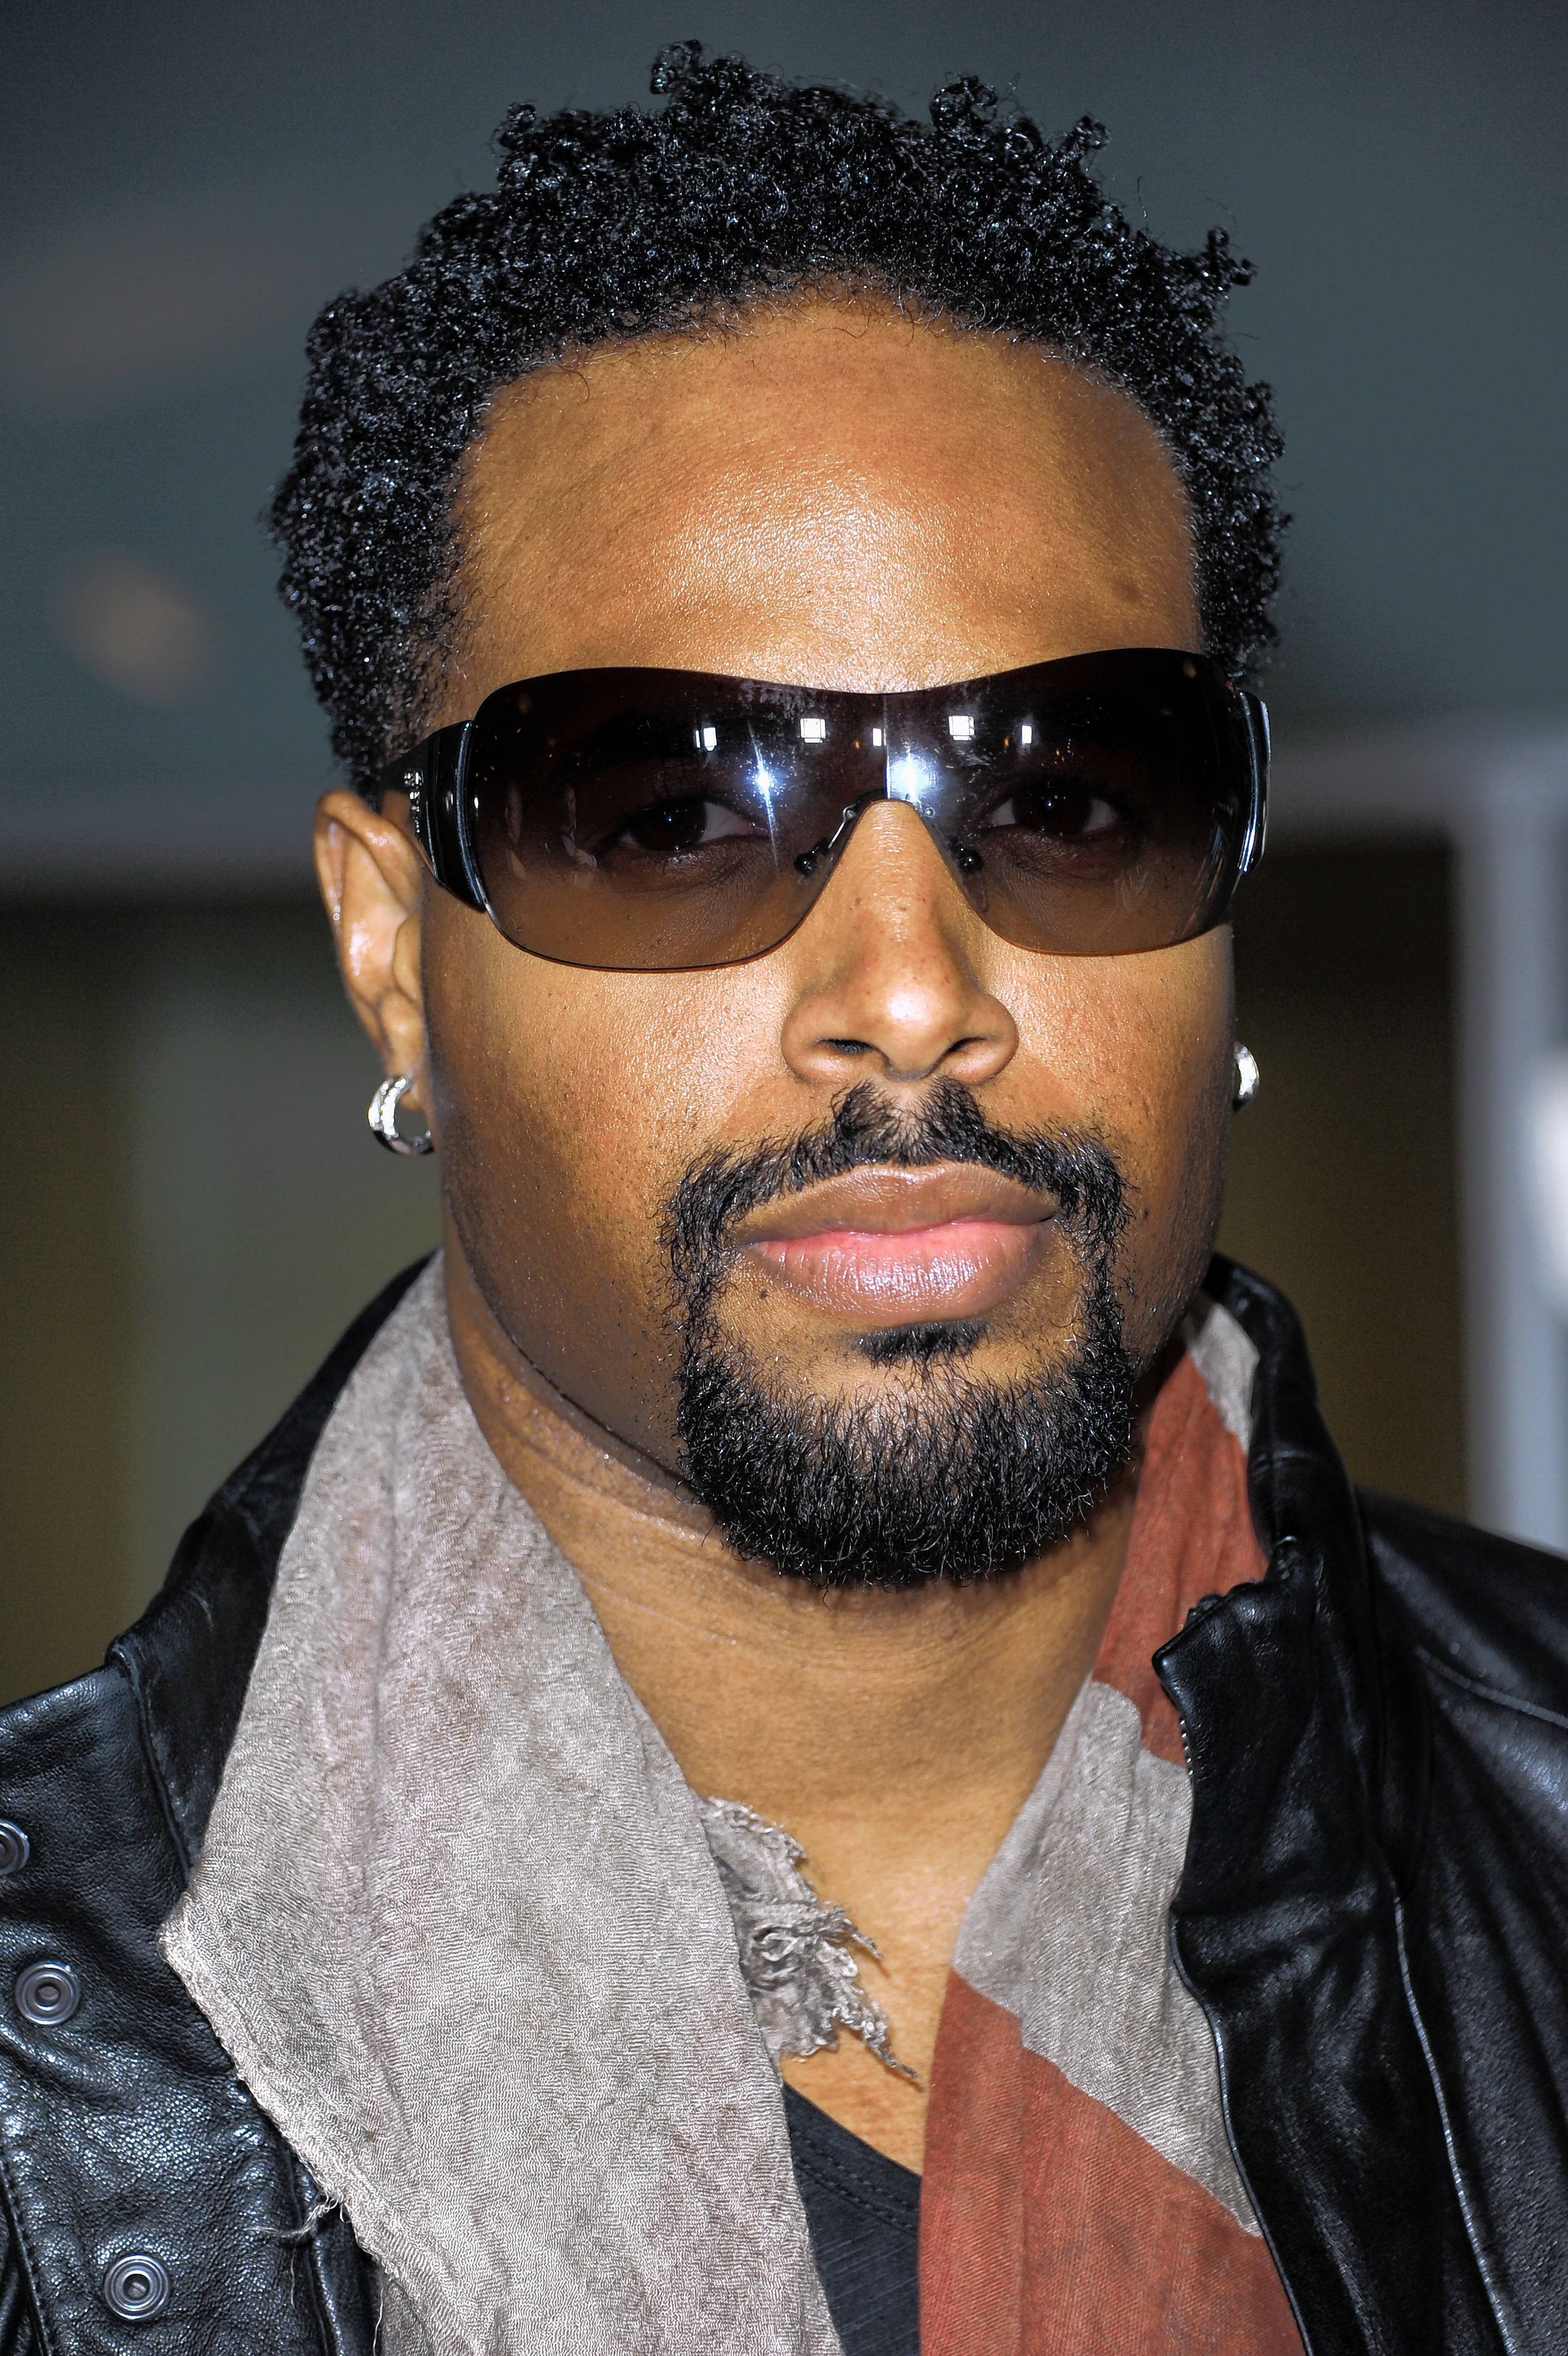 Shawn Wayans performs at the Improv Comedy Showcase in Schaumburg.